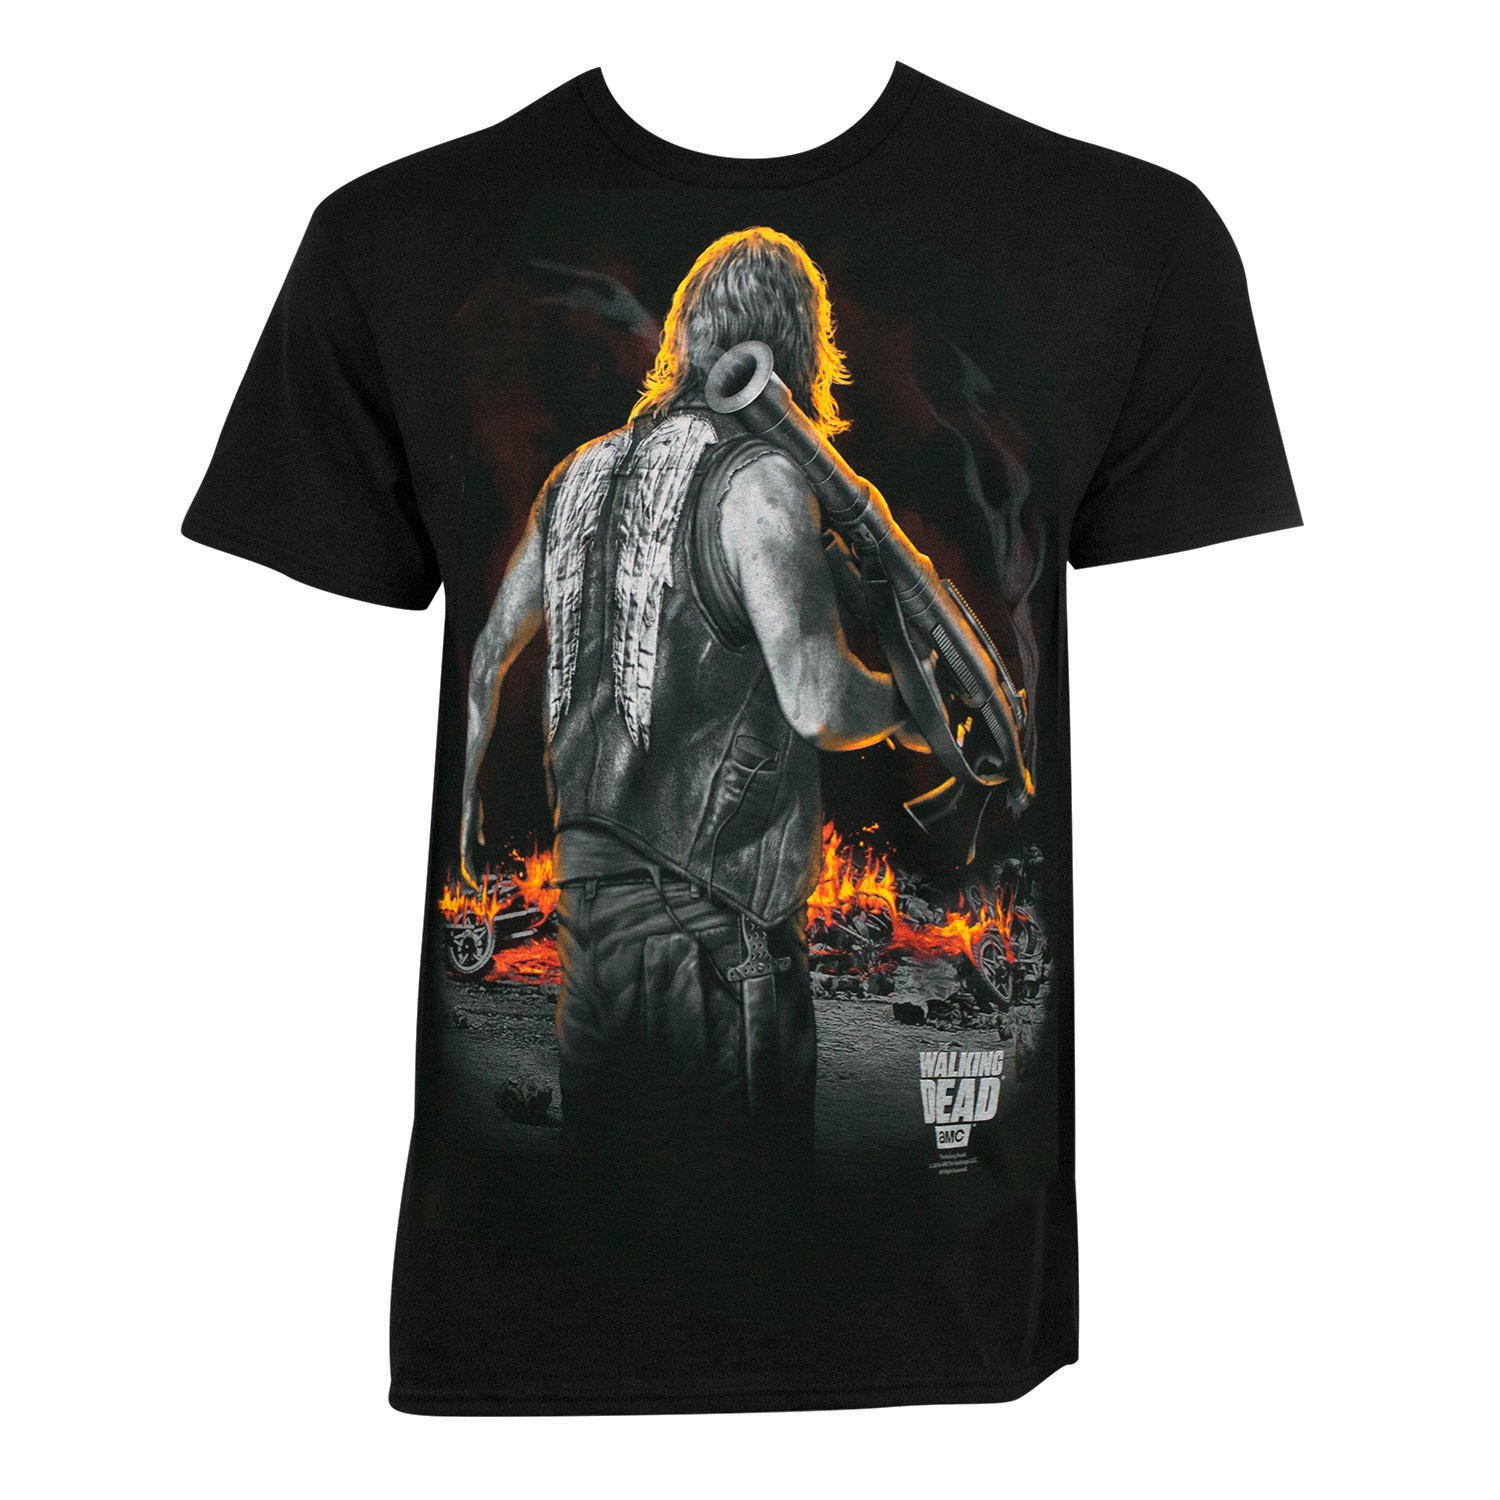 Walking Dead Bazooka Daryl Tee Shirt